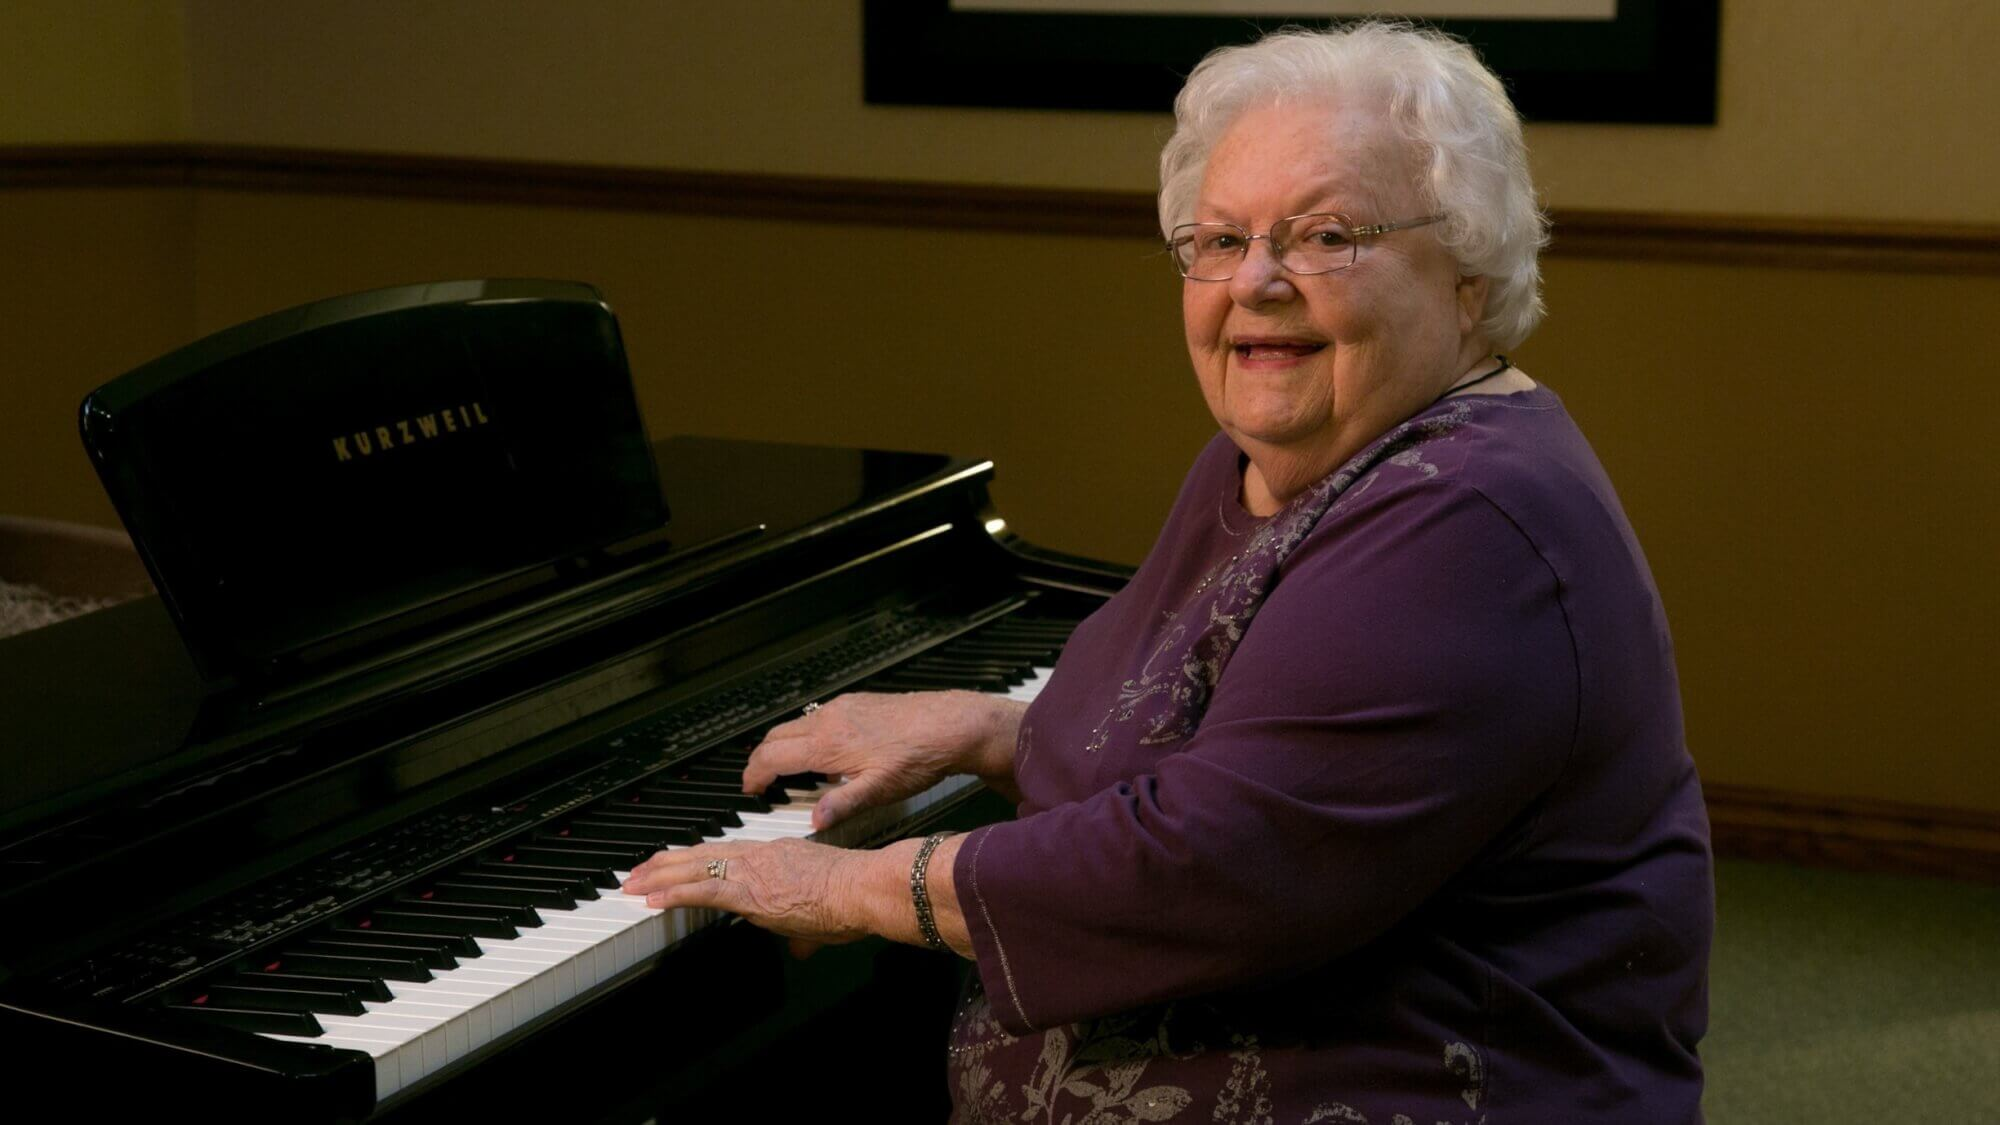 Happy senior enjoying playing piano.